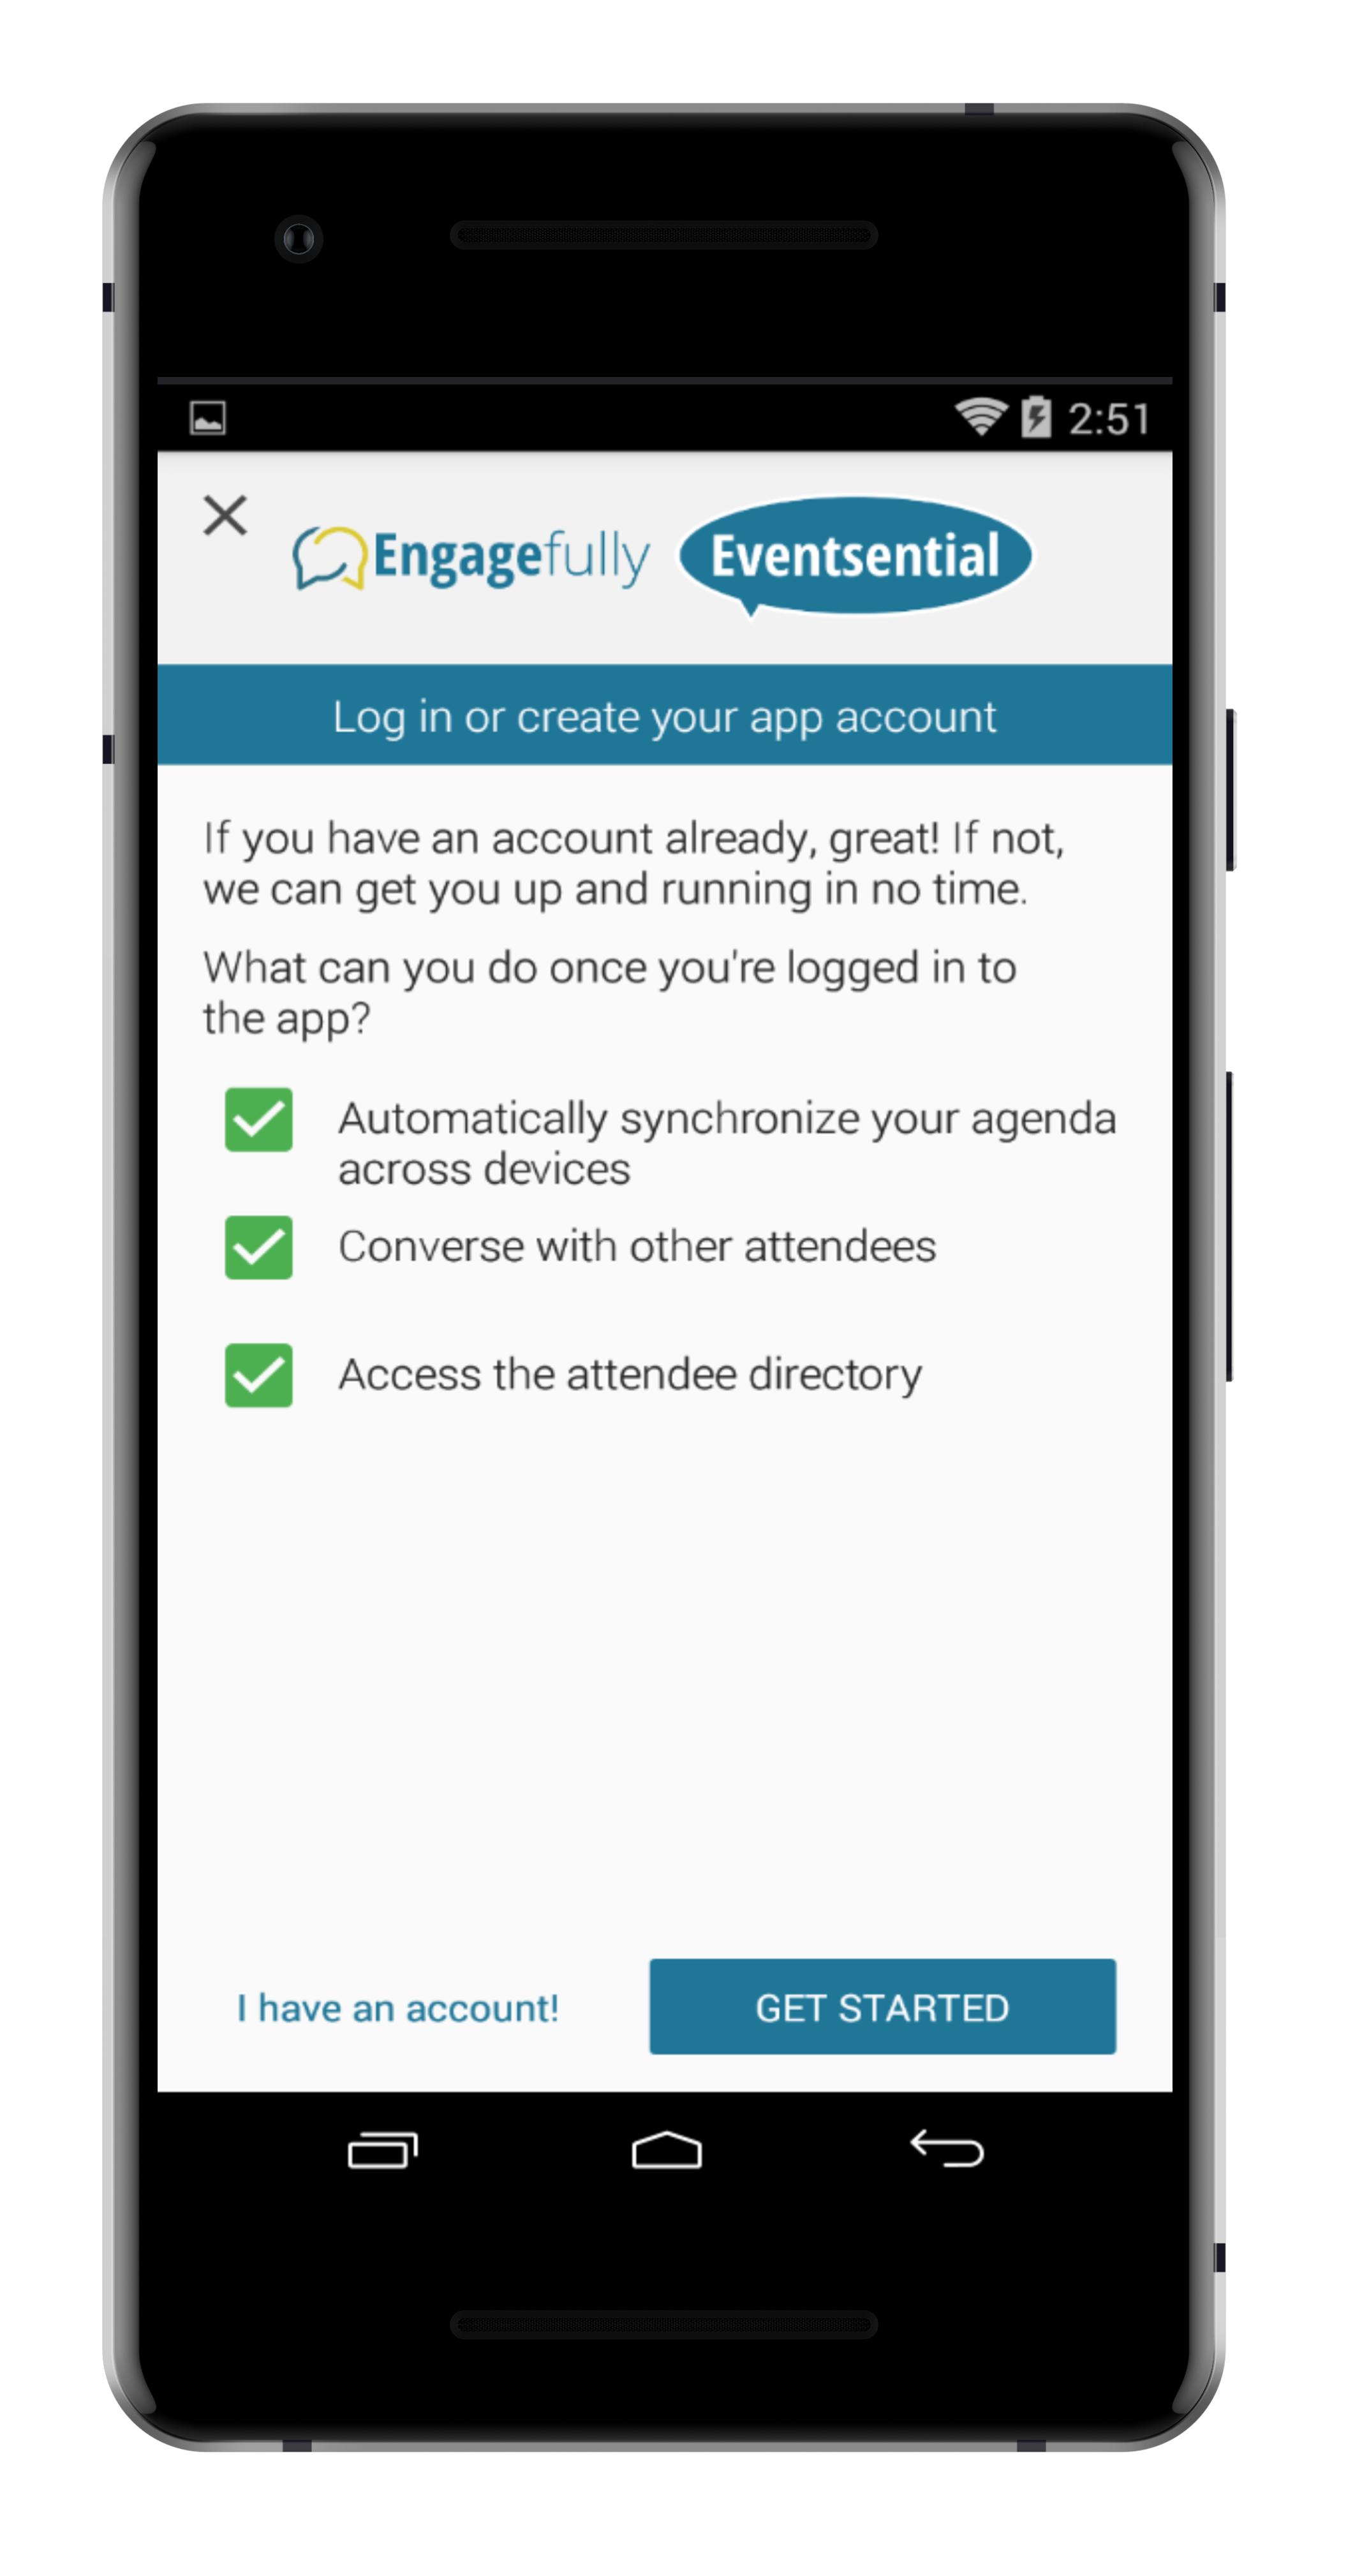 step 3. - SELECT THE BUTTON THAT SAYS GET STARTED TO BEGIN THE ACCOUNT CREATION PROCESS.